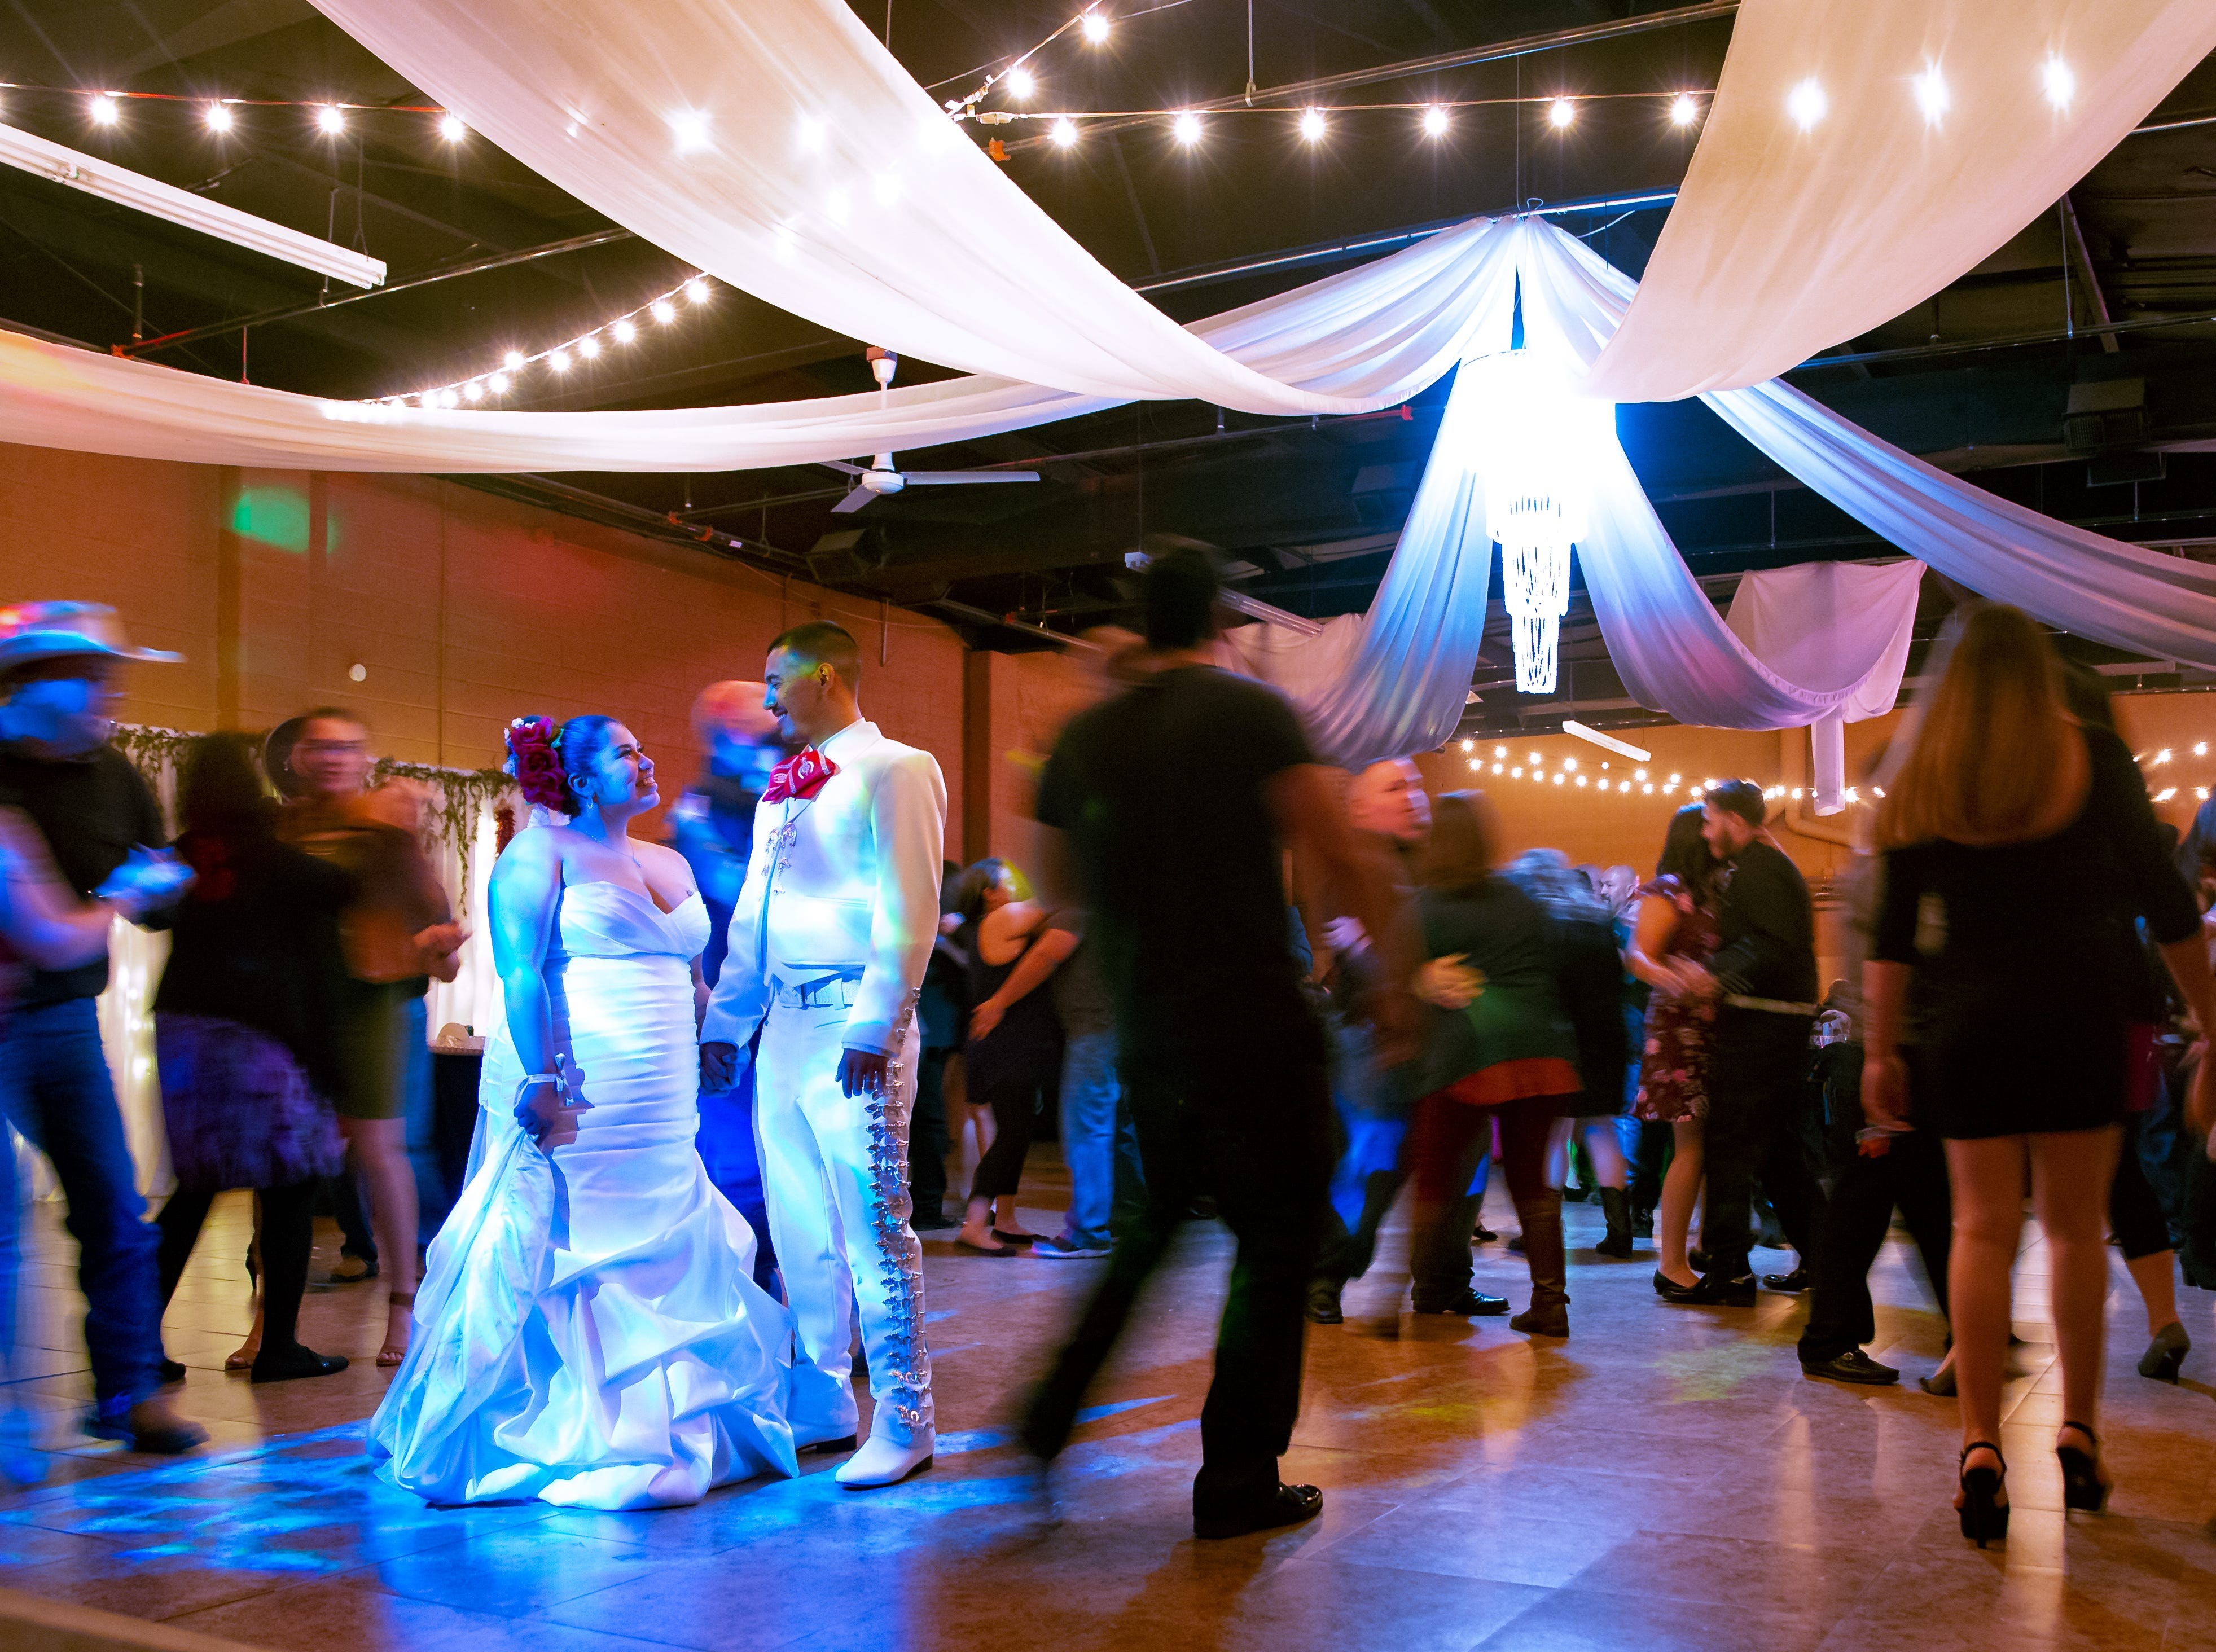 Newlyweds Maria Guadalupe Carrillo and Jacobo Martos share a moment together on the dance  on Saturday, Nov. 17, 2018, during their wedding reception. The wedding was themed Día de los Muertos in honor of Maria's daughter, Isabella Marie Lerma, who passed away when she was 2 months old.